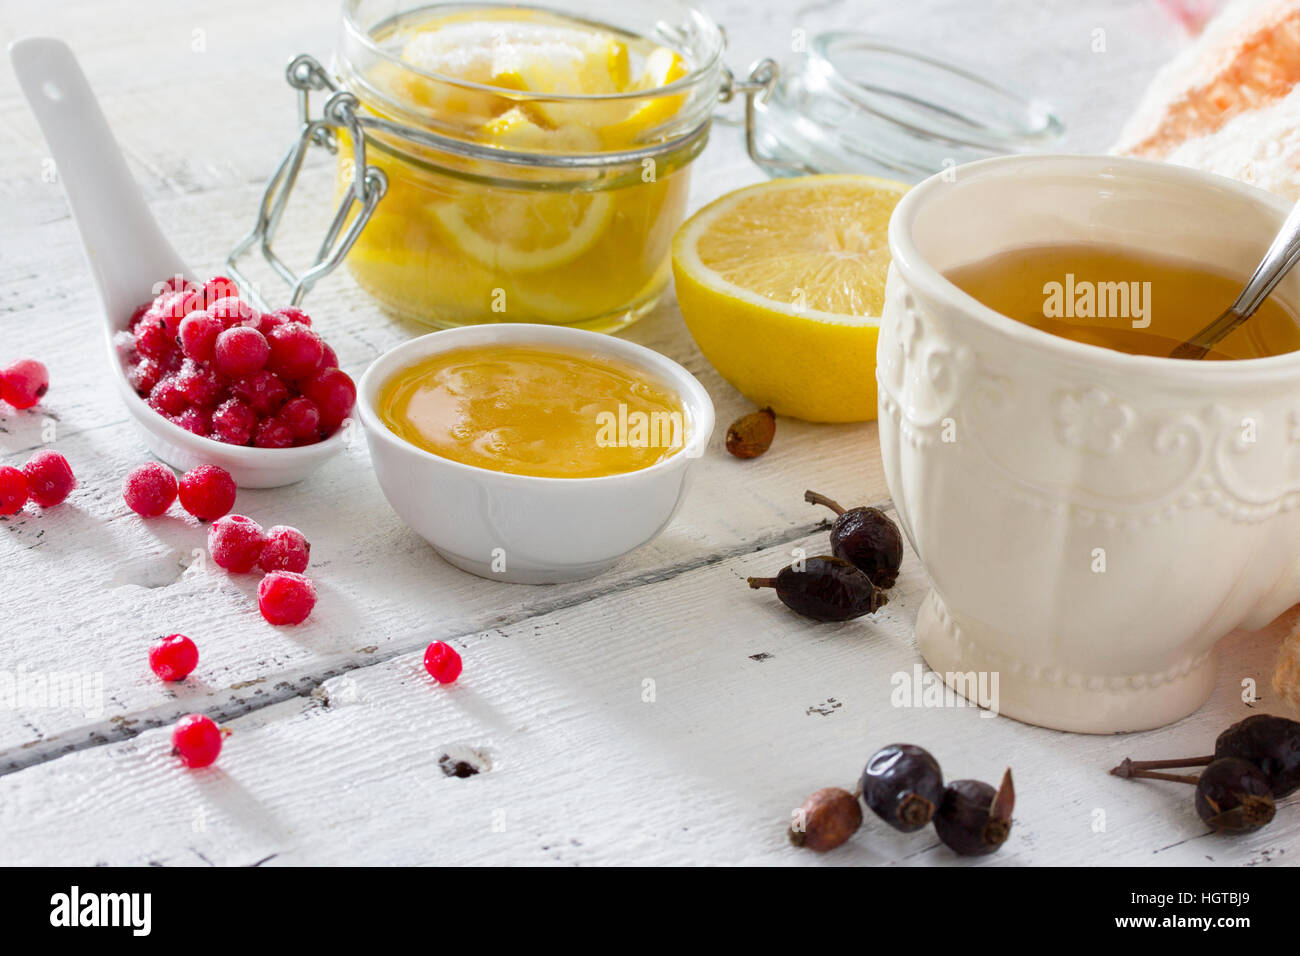 Treatment of seasonal colds - treatment in folk medicine, dietary sources of vitamin on a white table: lemon, honey, - Stock Image